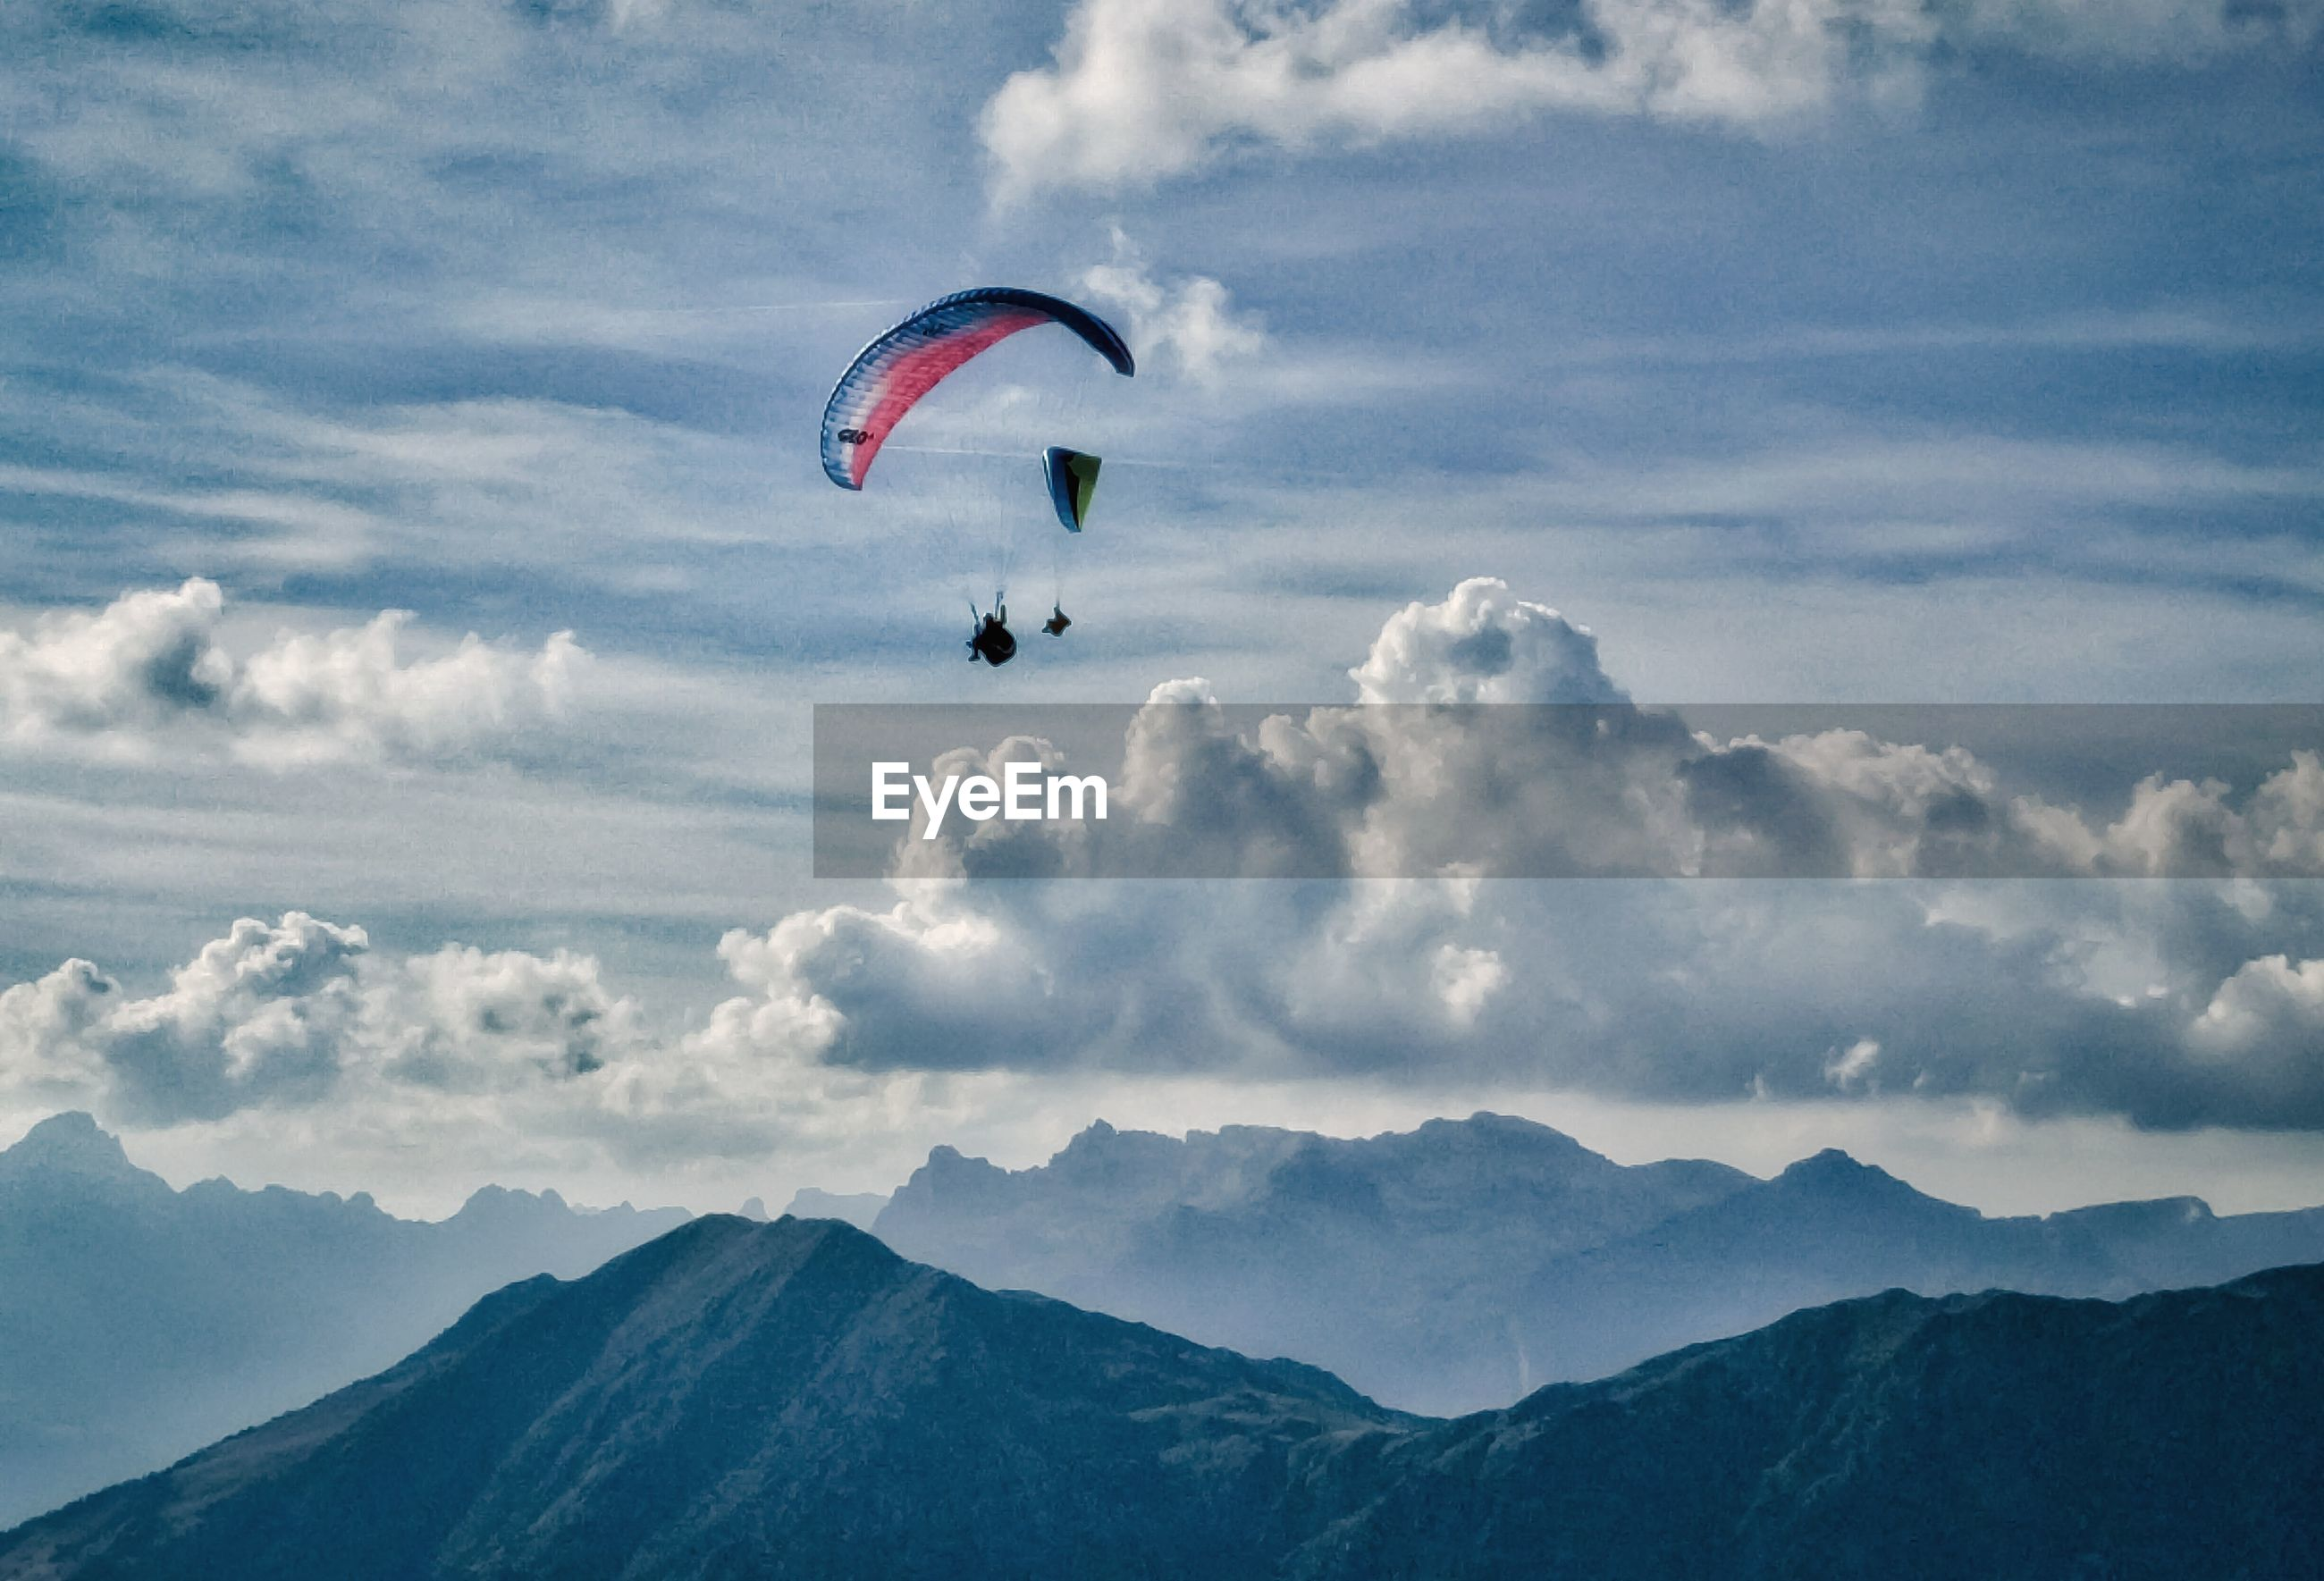 People paragliding above mountains against cloudy sky